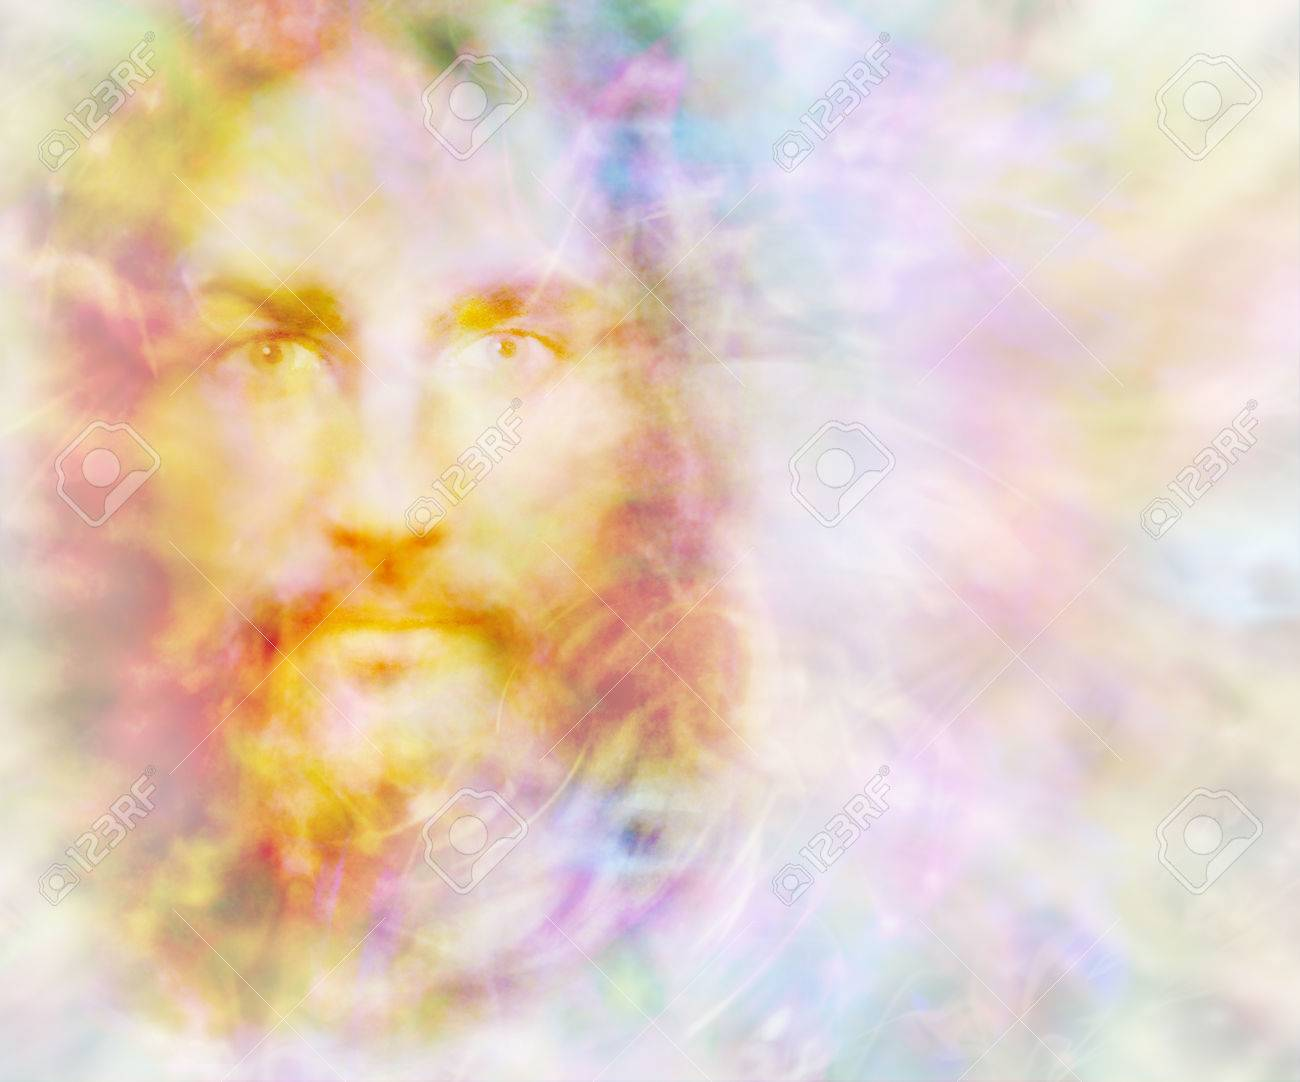 Gentle Spirit - ethereal golden light forming the face of a gentle spirit on a pastel colored energy field background with copy space on right - 68539096